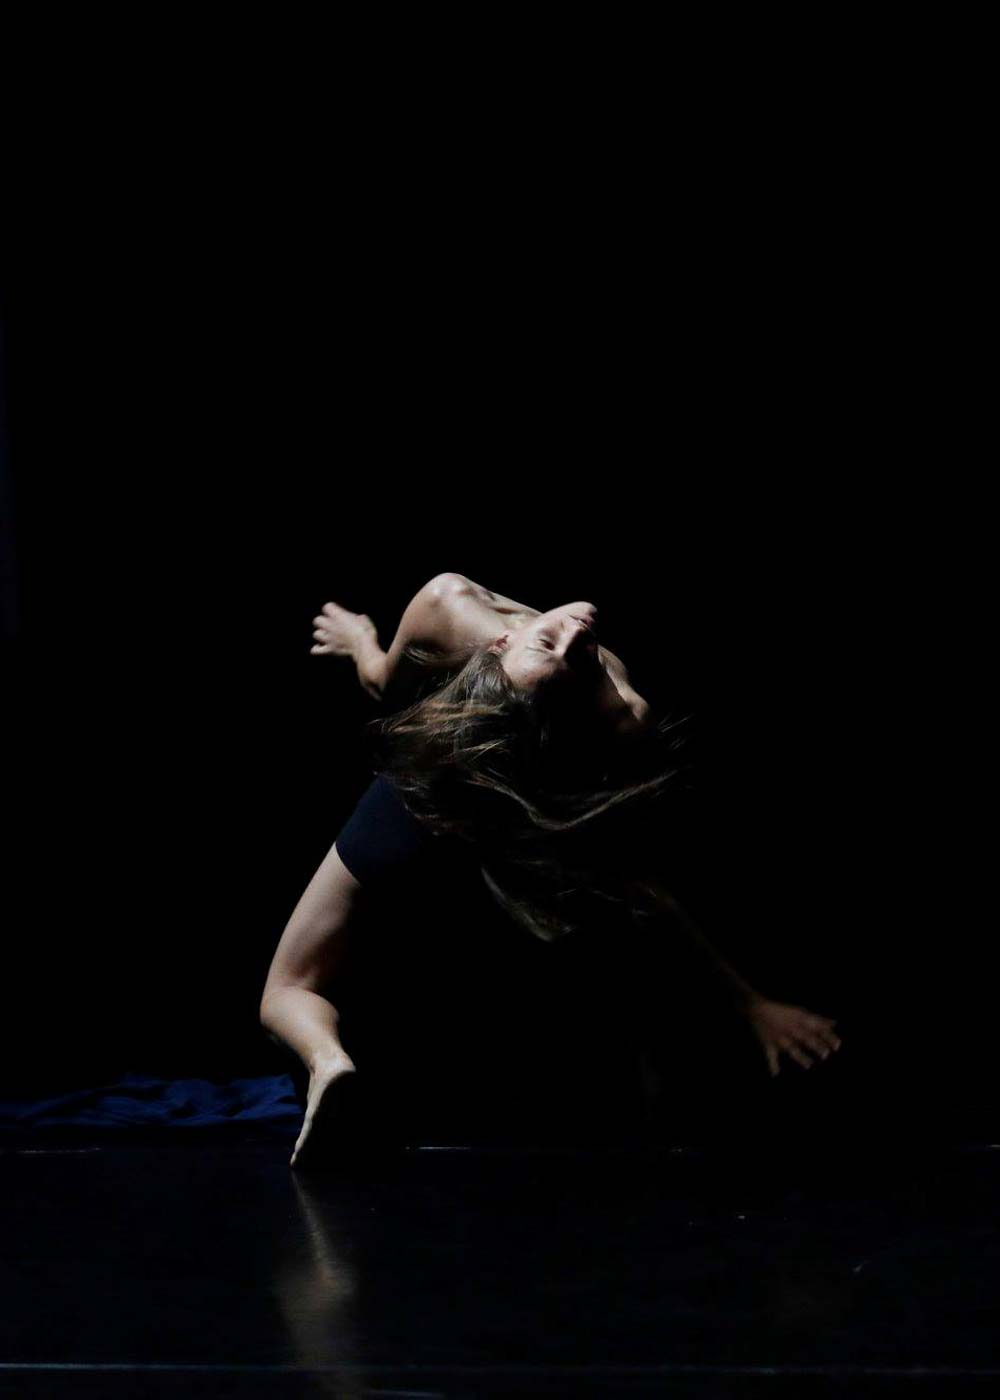 Anna Kempin is balancing on her toes with head raised towards the ceiling, during InBetWeEn A Shock dance performance